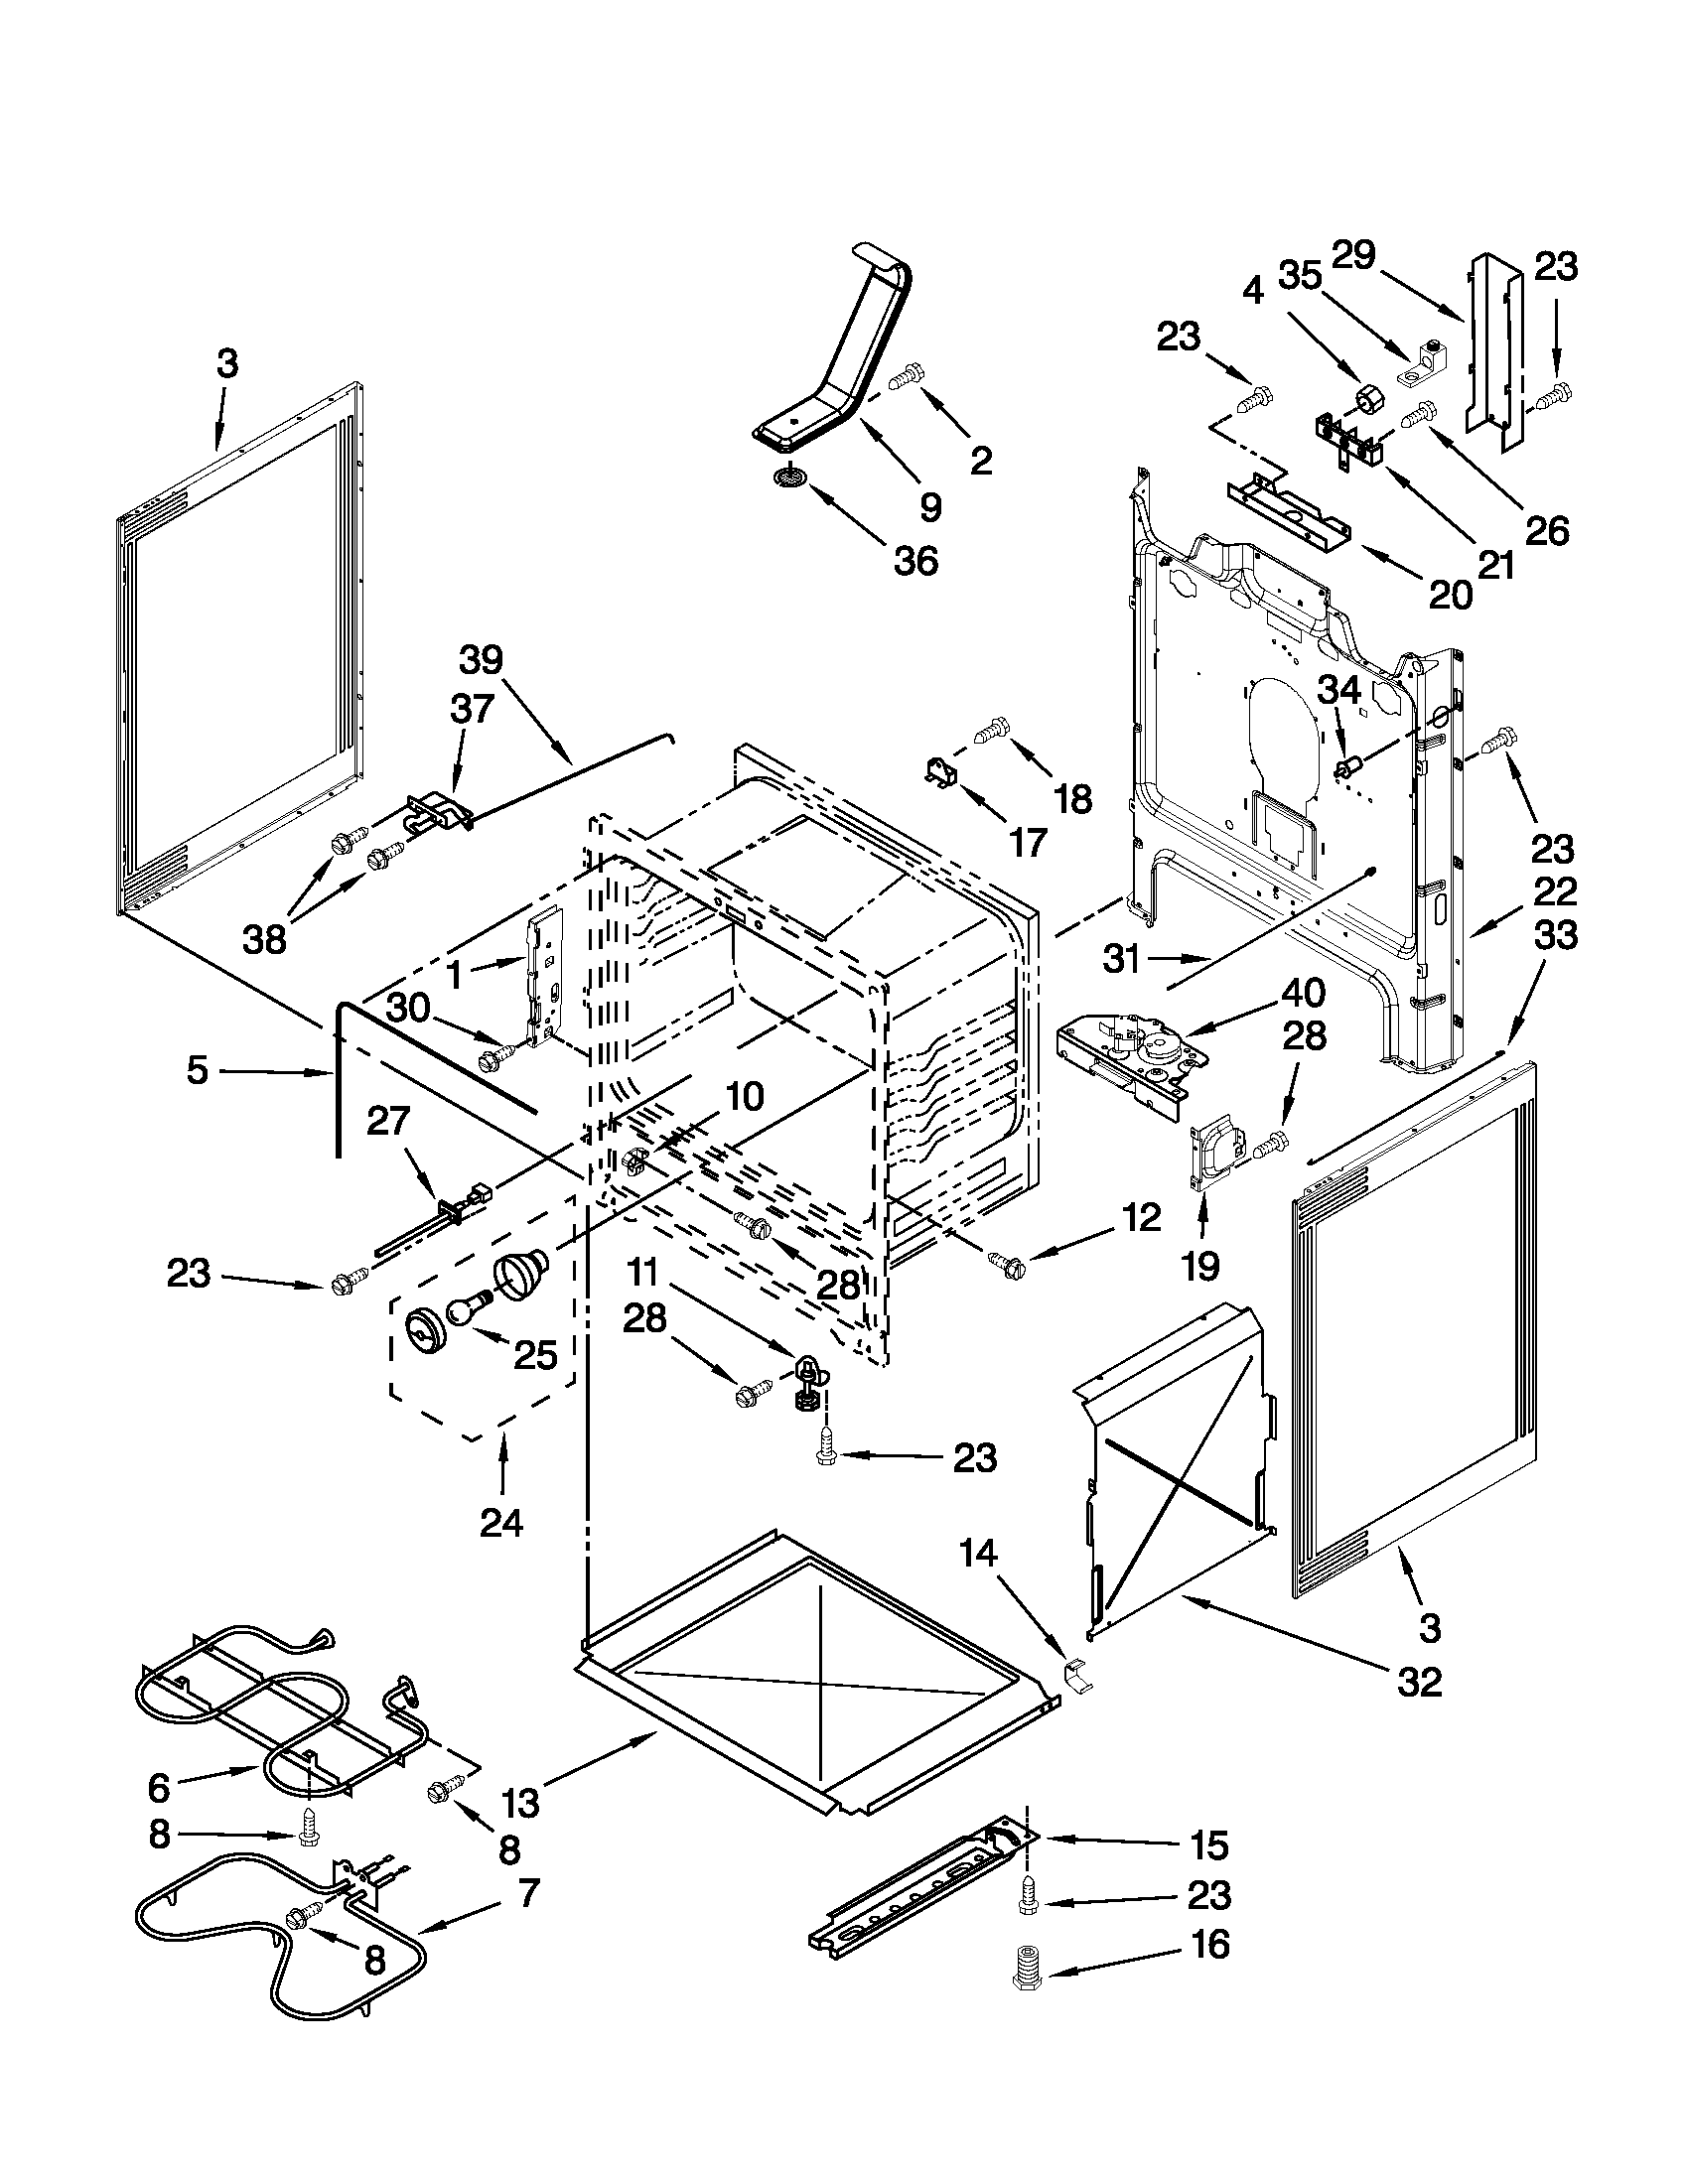 CHASSIS PARTS Diagram & Parts List for Model wfe510s0as0